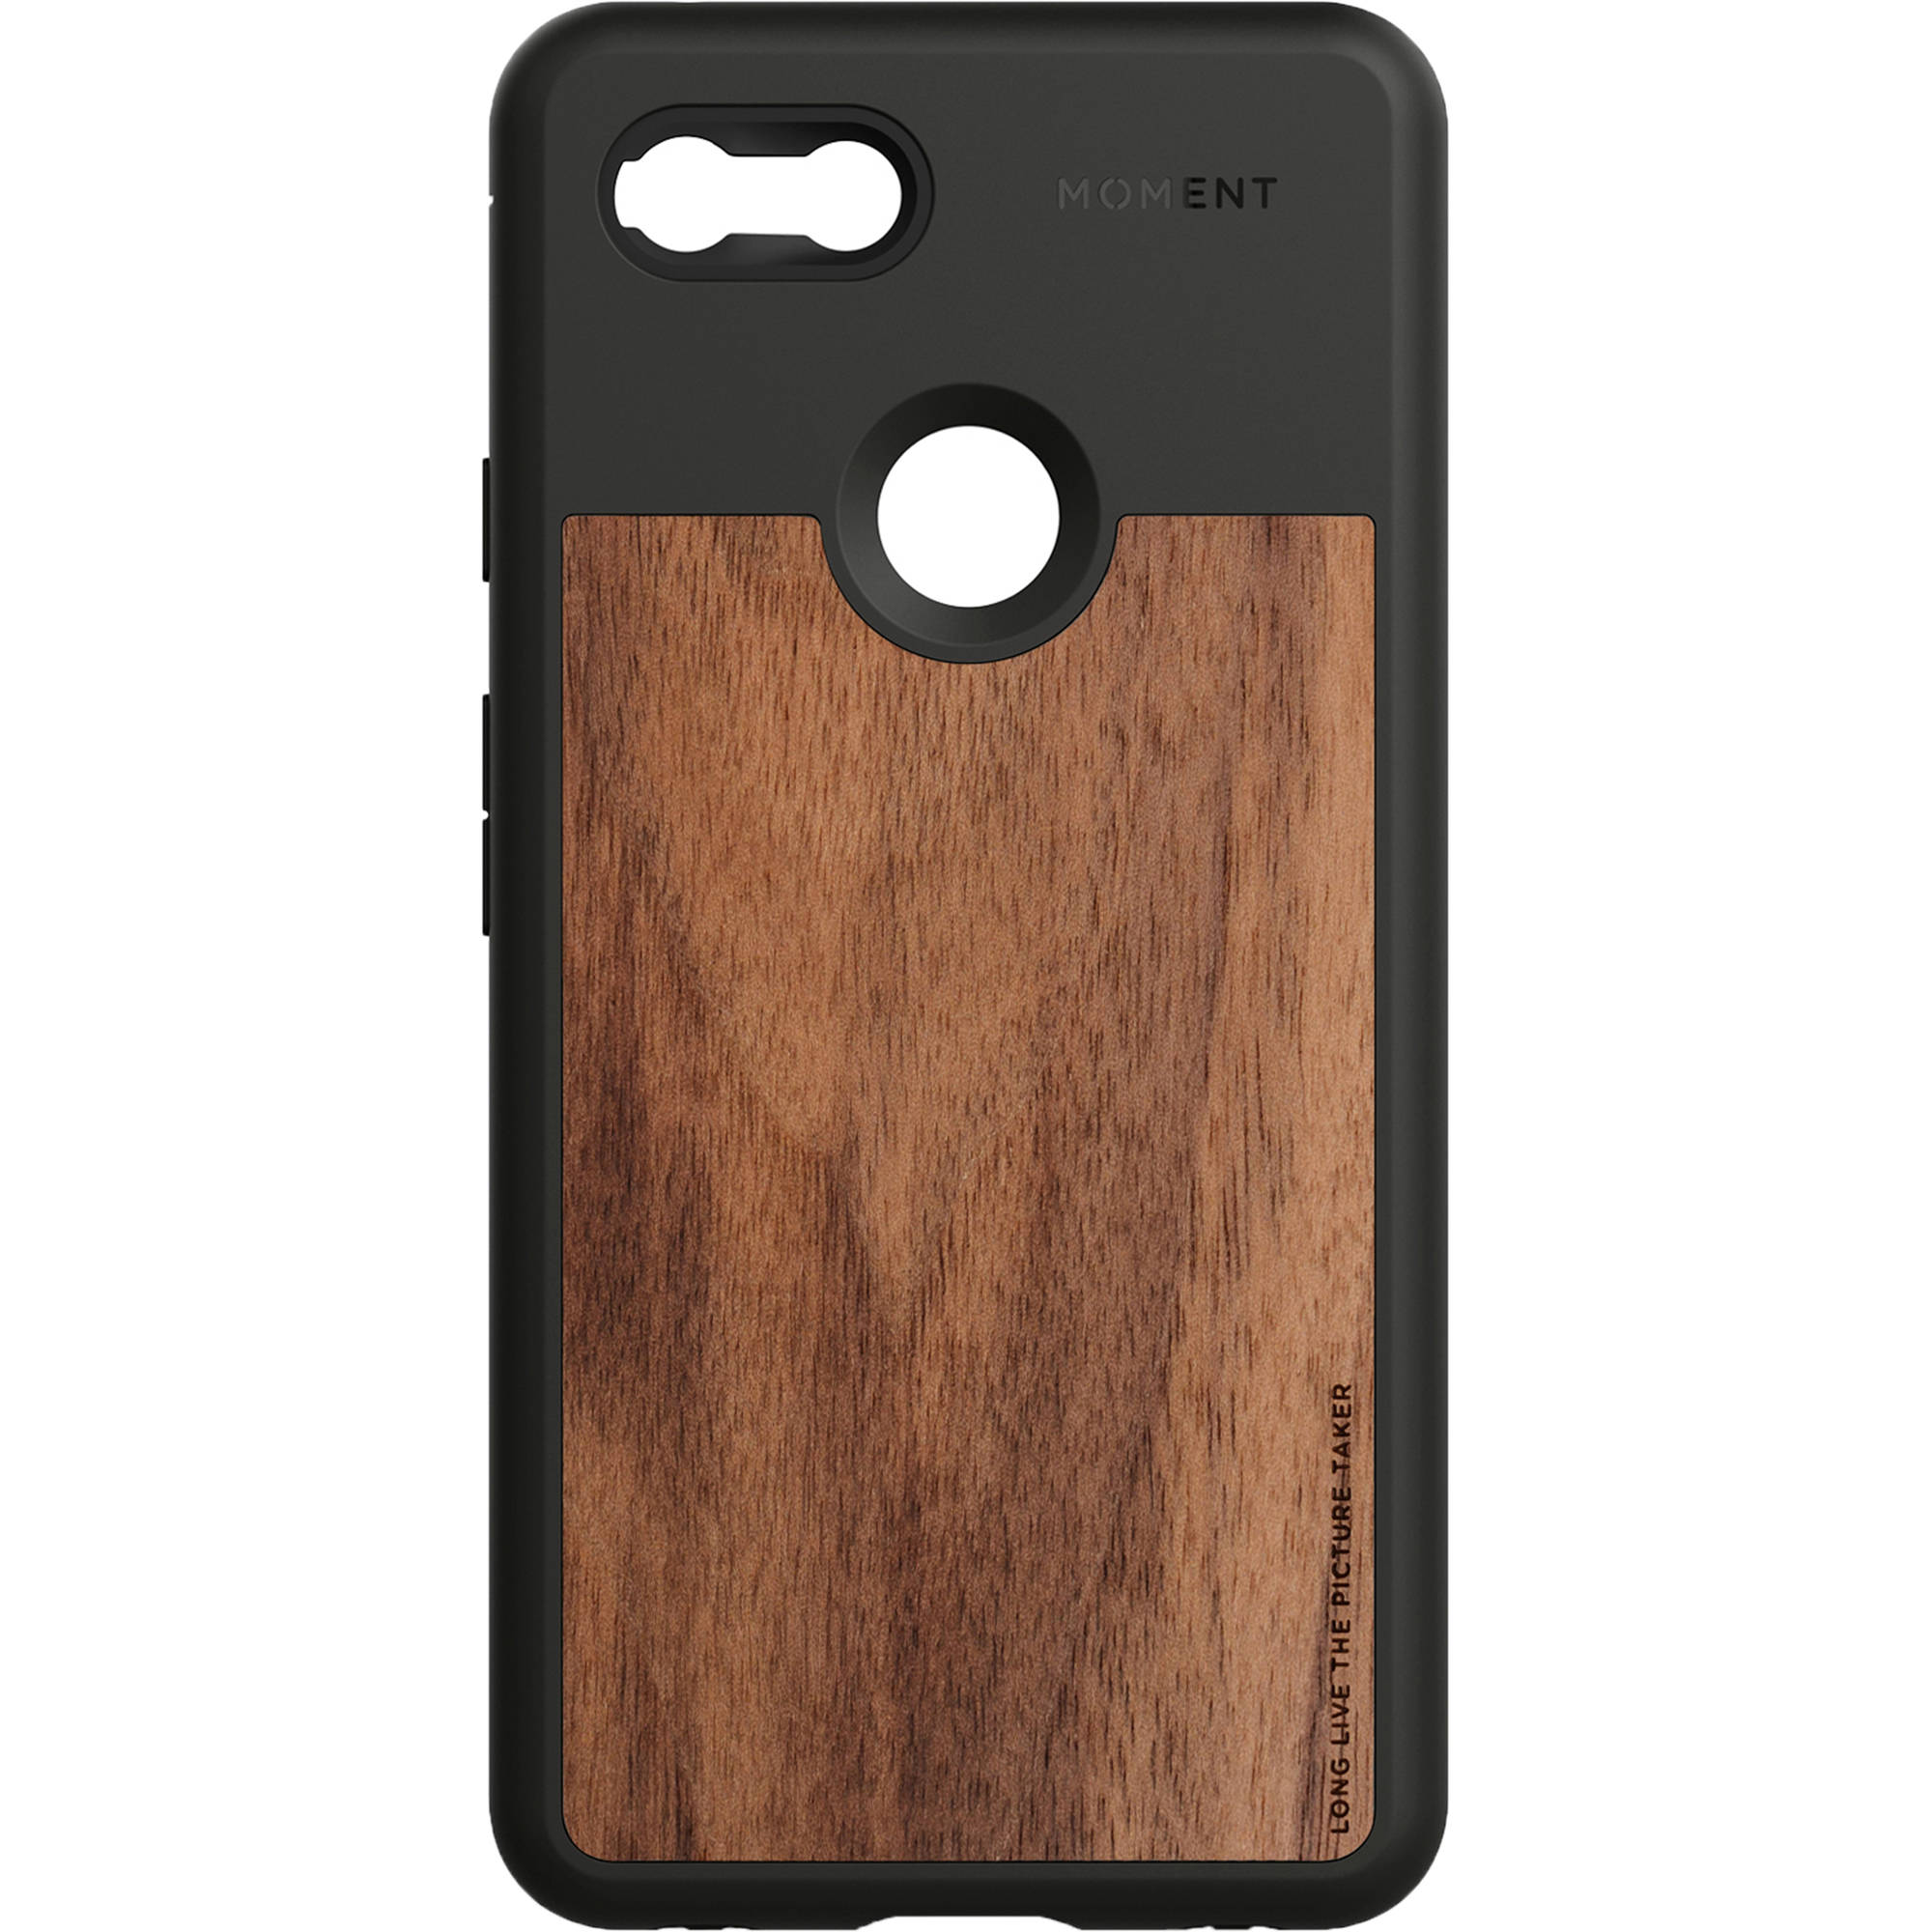 new arrival 77e96 425f4 Moment Photo Case for the Google Pixel 3 XL (Walnut)